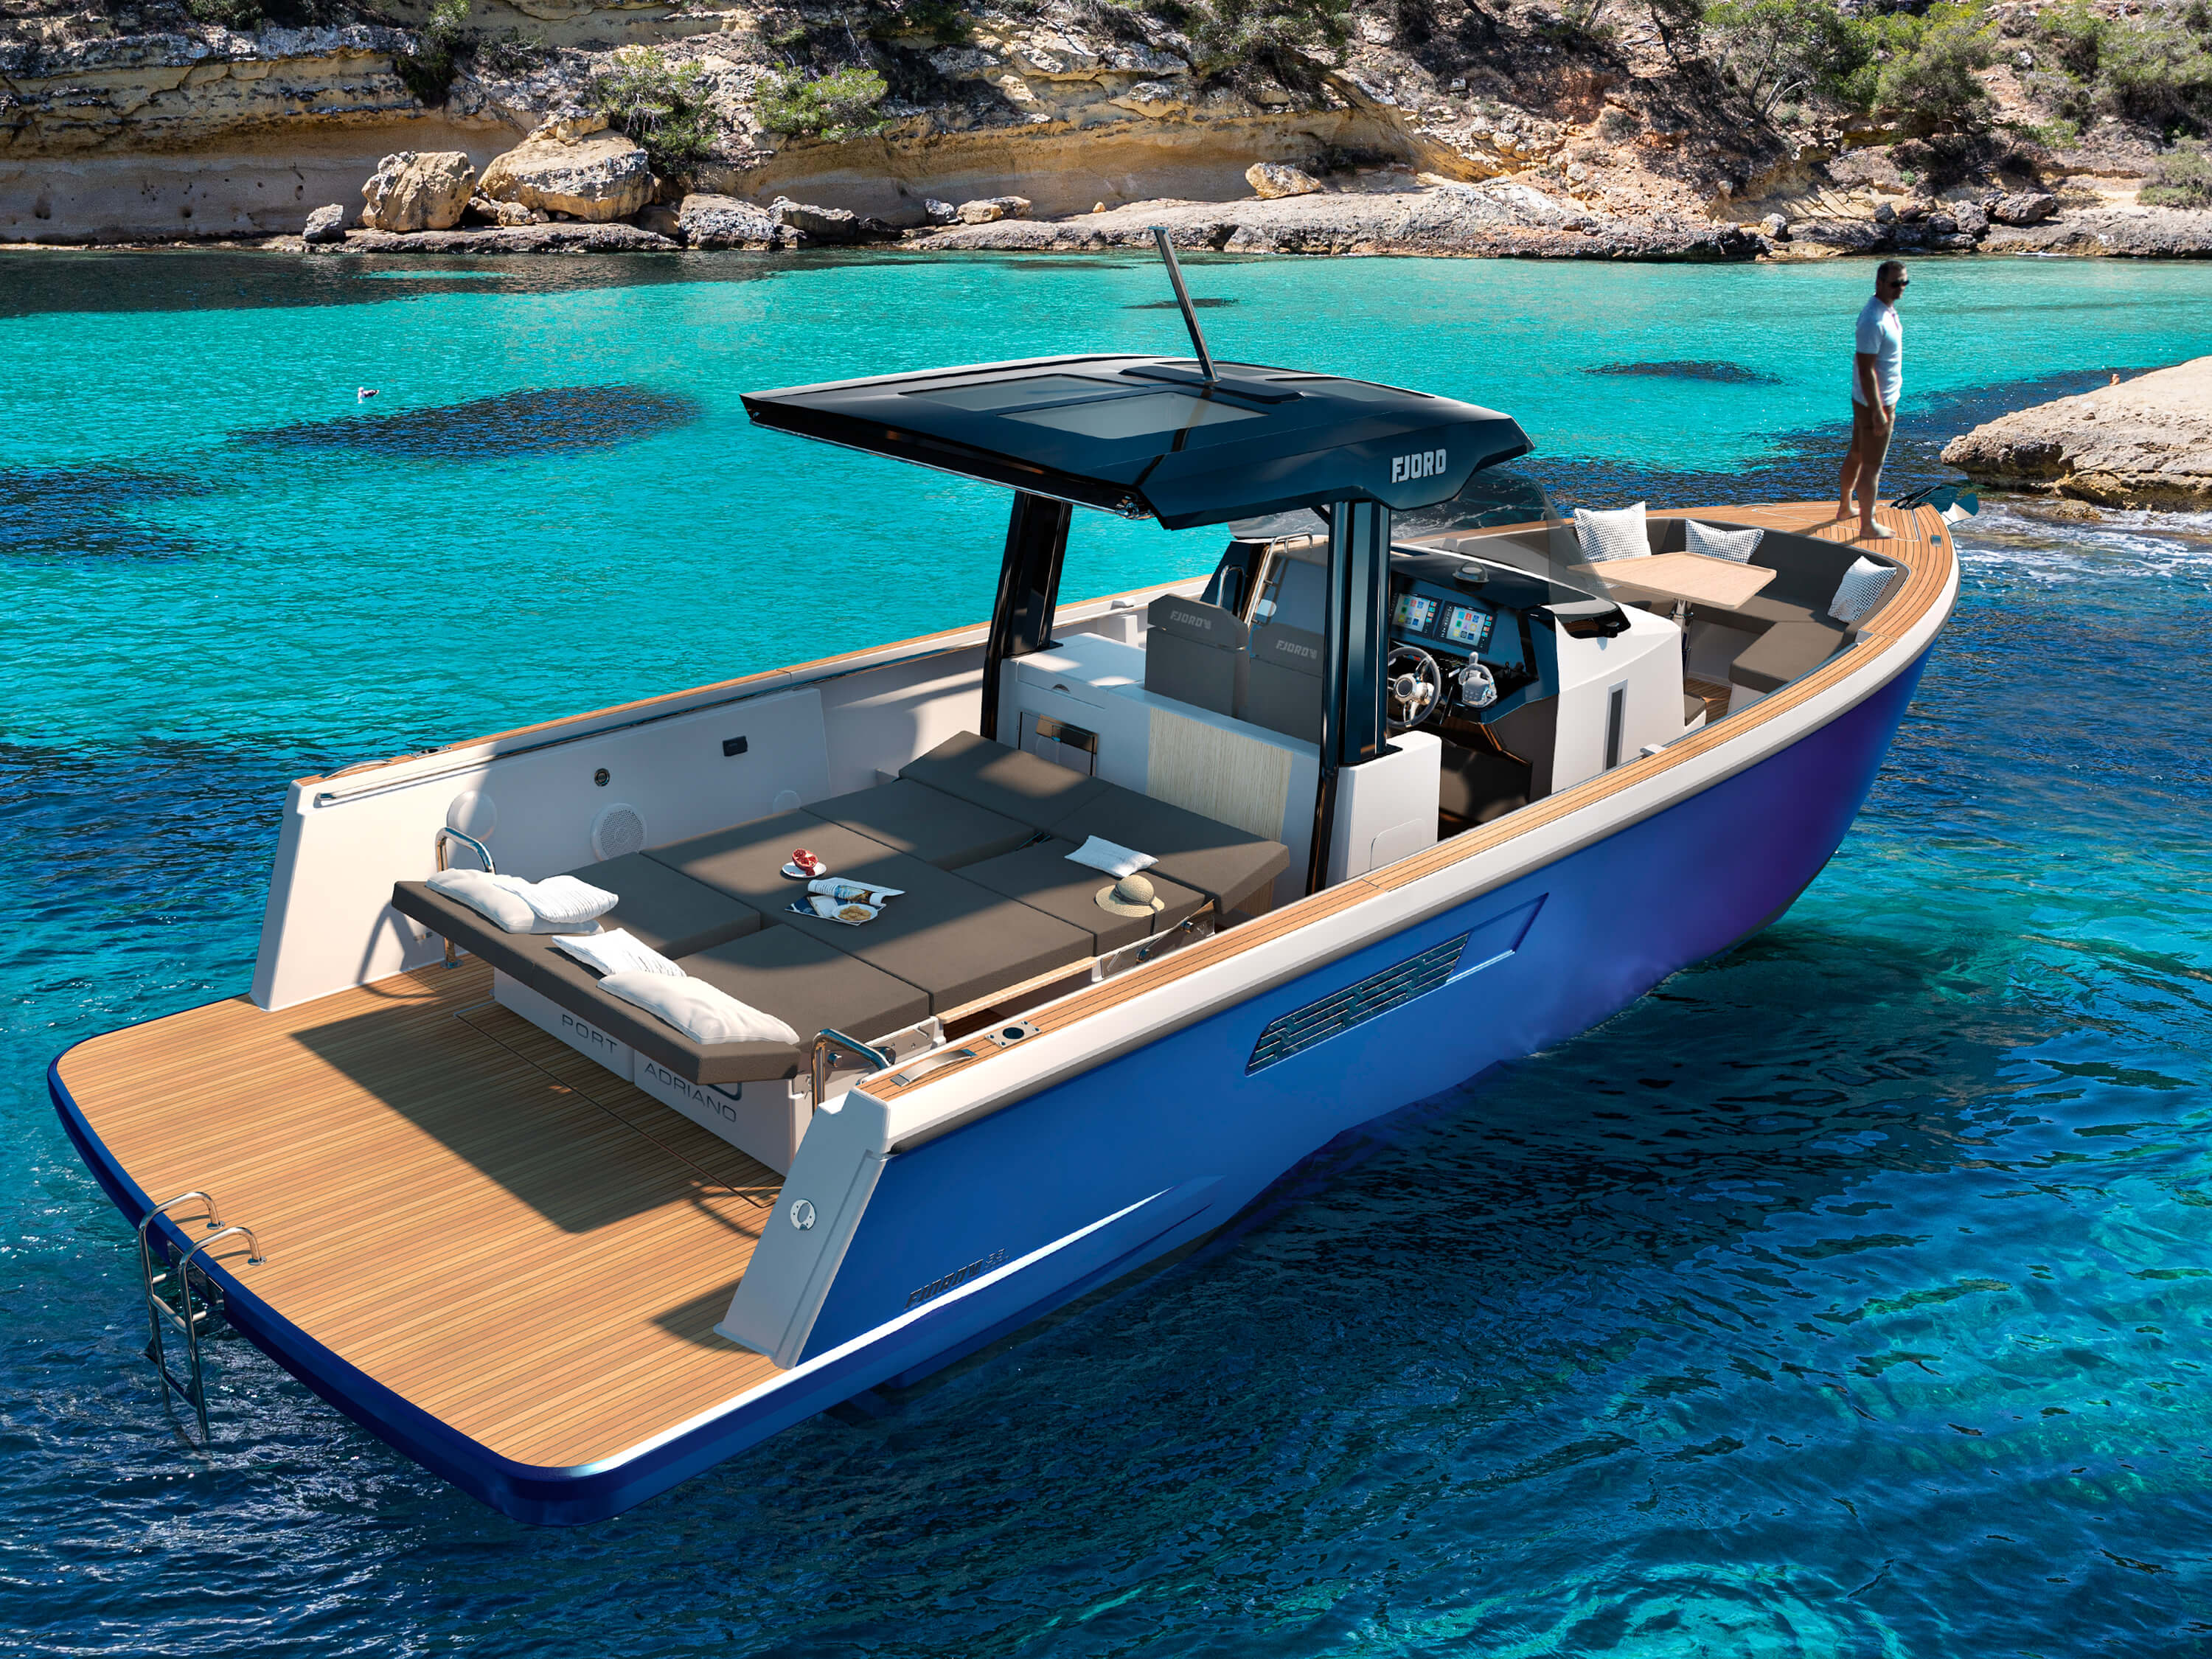 Fjord 38 open | Fjord